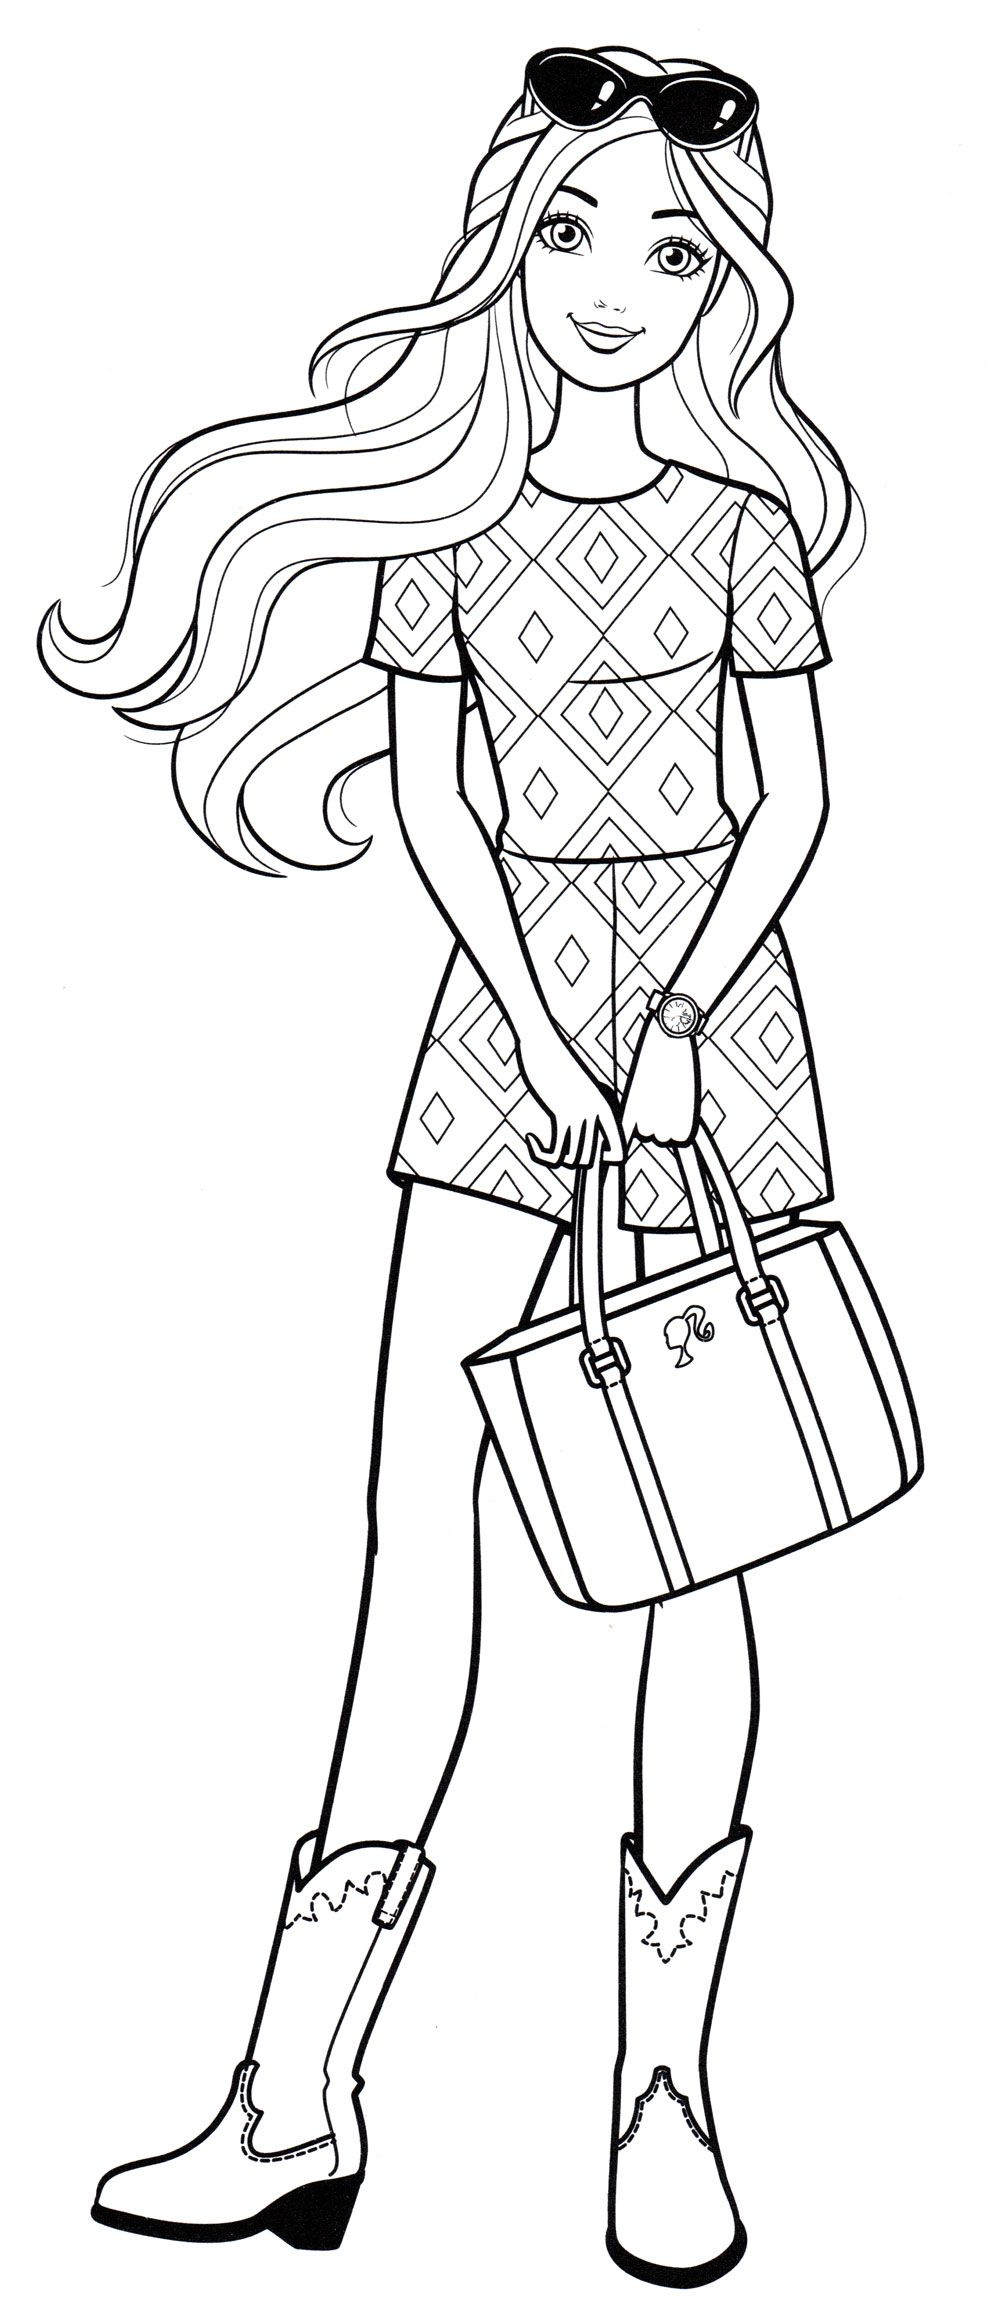 Pin By Marina On Barbie Coloring Book In 2020 Barbie Coloring Pages Barbie Coloring Barbie Drawing